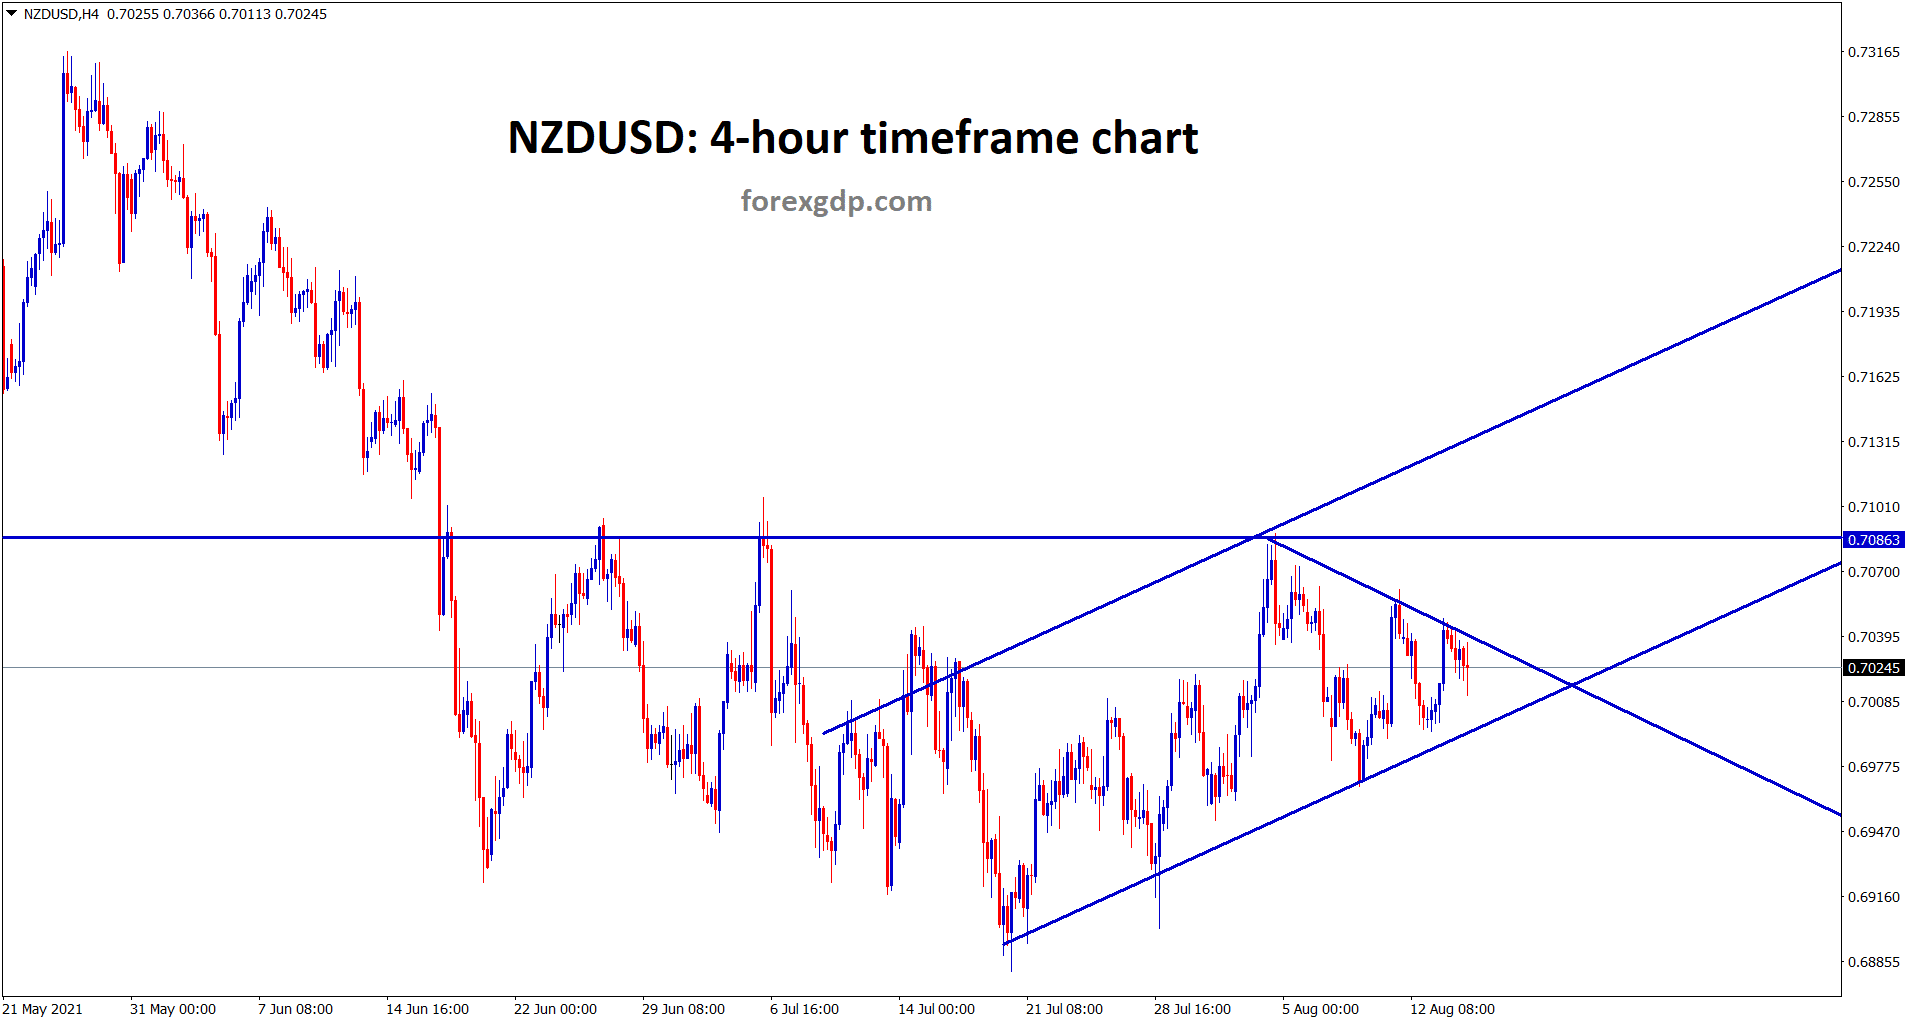 NZDUSD fallen from the resistance zone now going to break the minor symmetrical triangle pattern